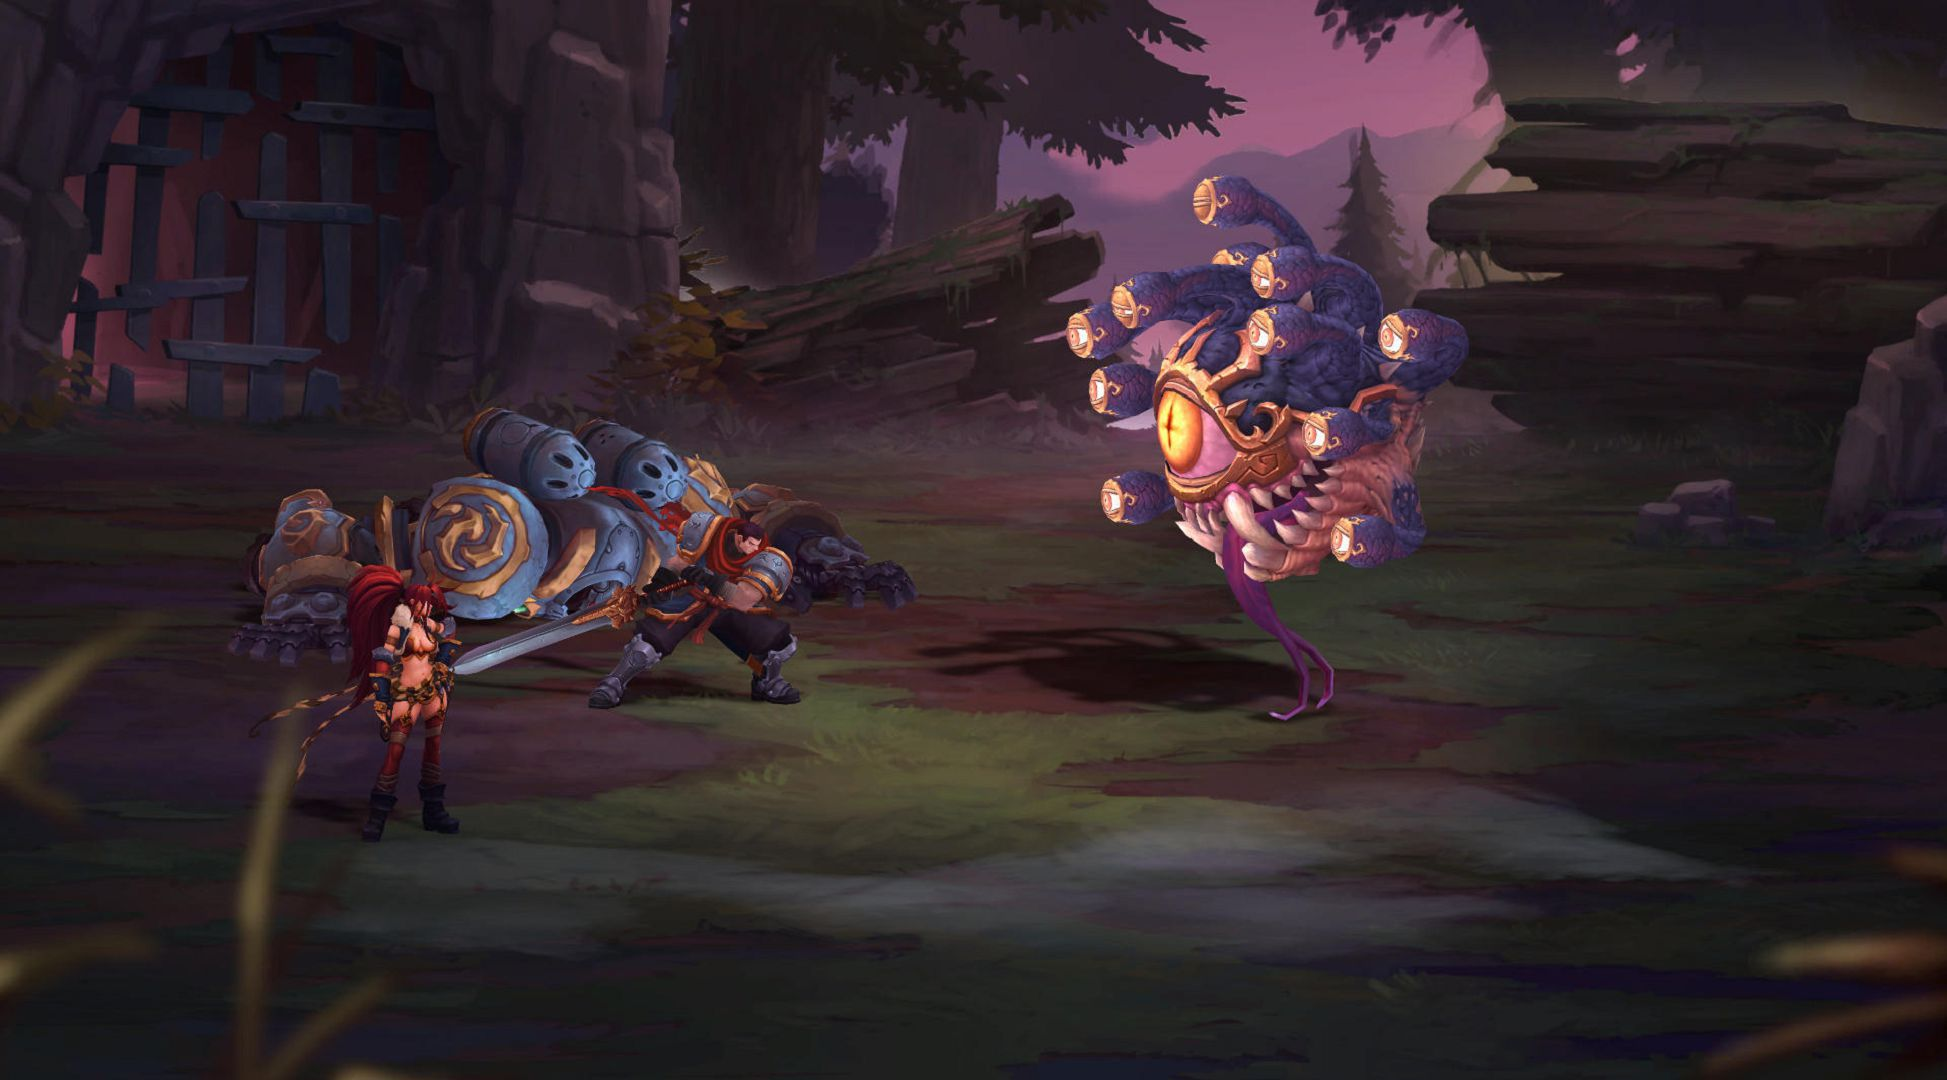 Battle Chasers Nightwar Widescreen